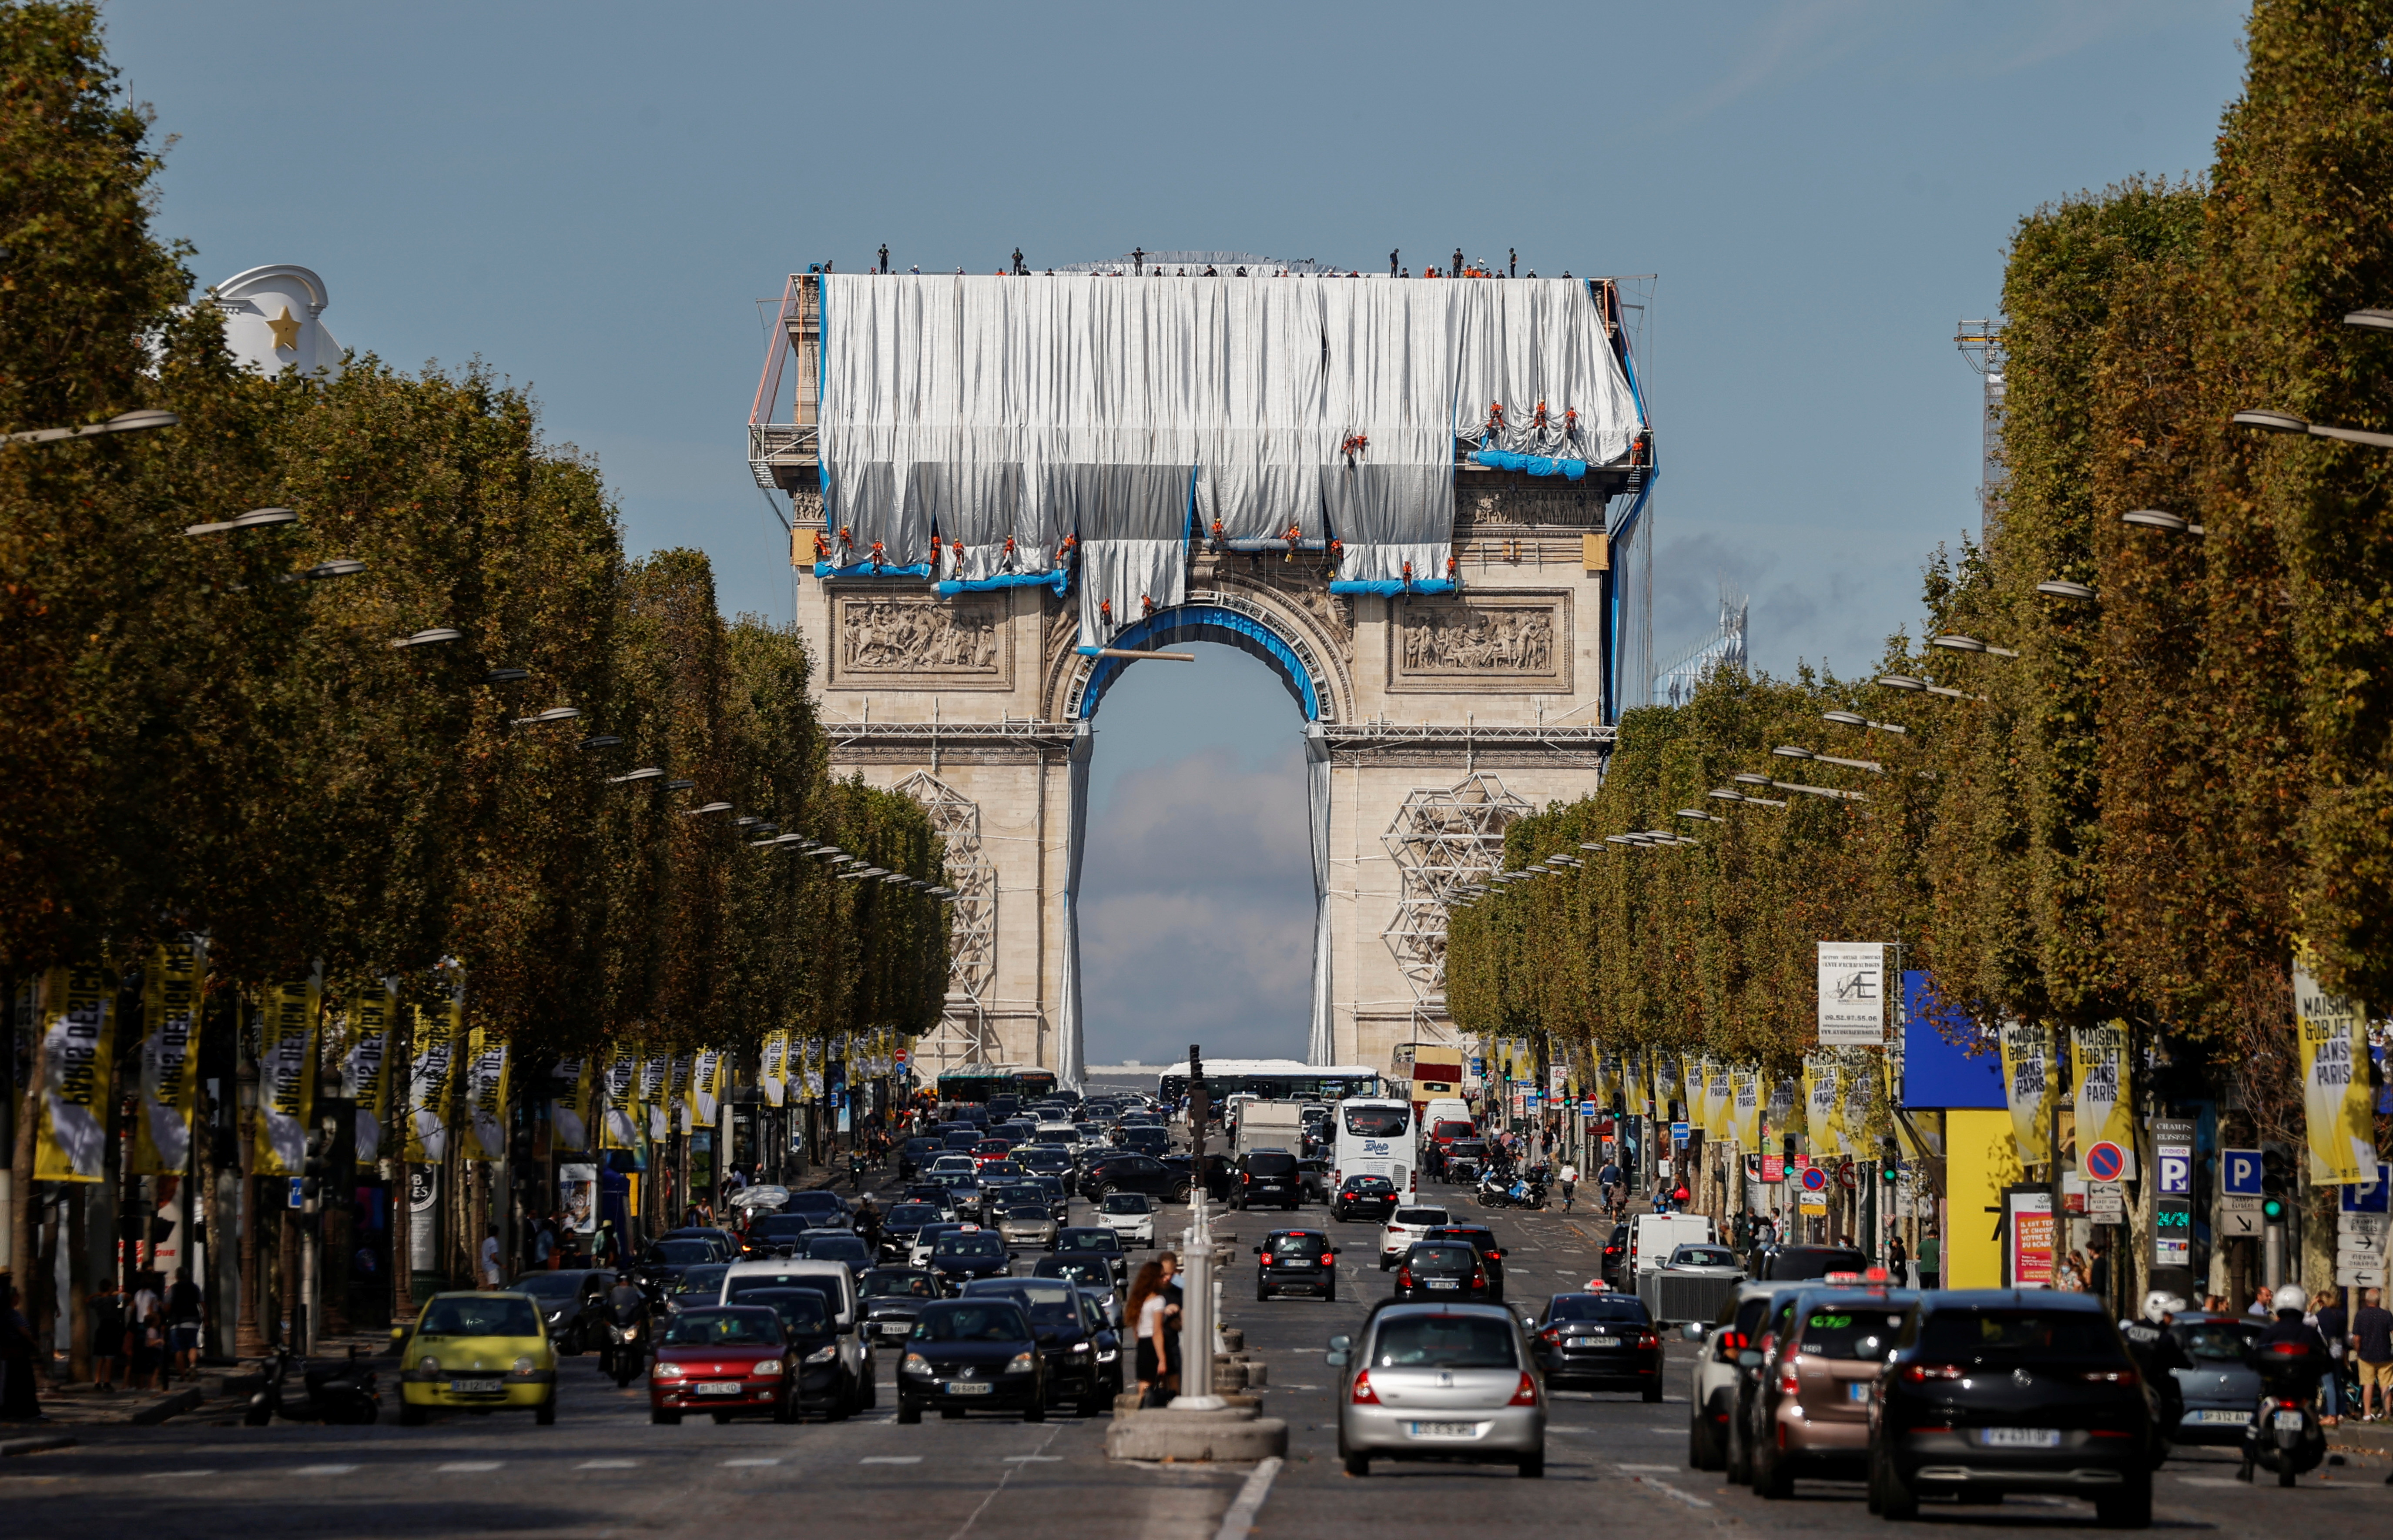 Workers install a shimmering wrapper to envelop Paris landmark, the Arc de Triomphe, in a posthumous installation by artist Christo on the Champs Elysee avenue, in Paris, France, September 12, 2021.  REUTERS/Christian Hartmann